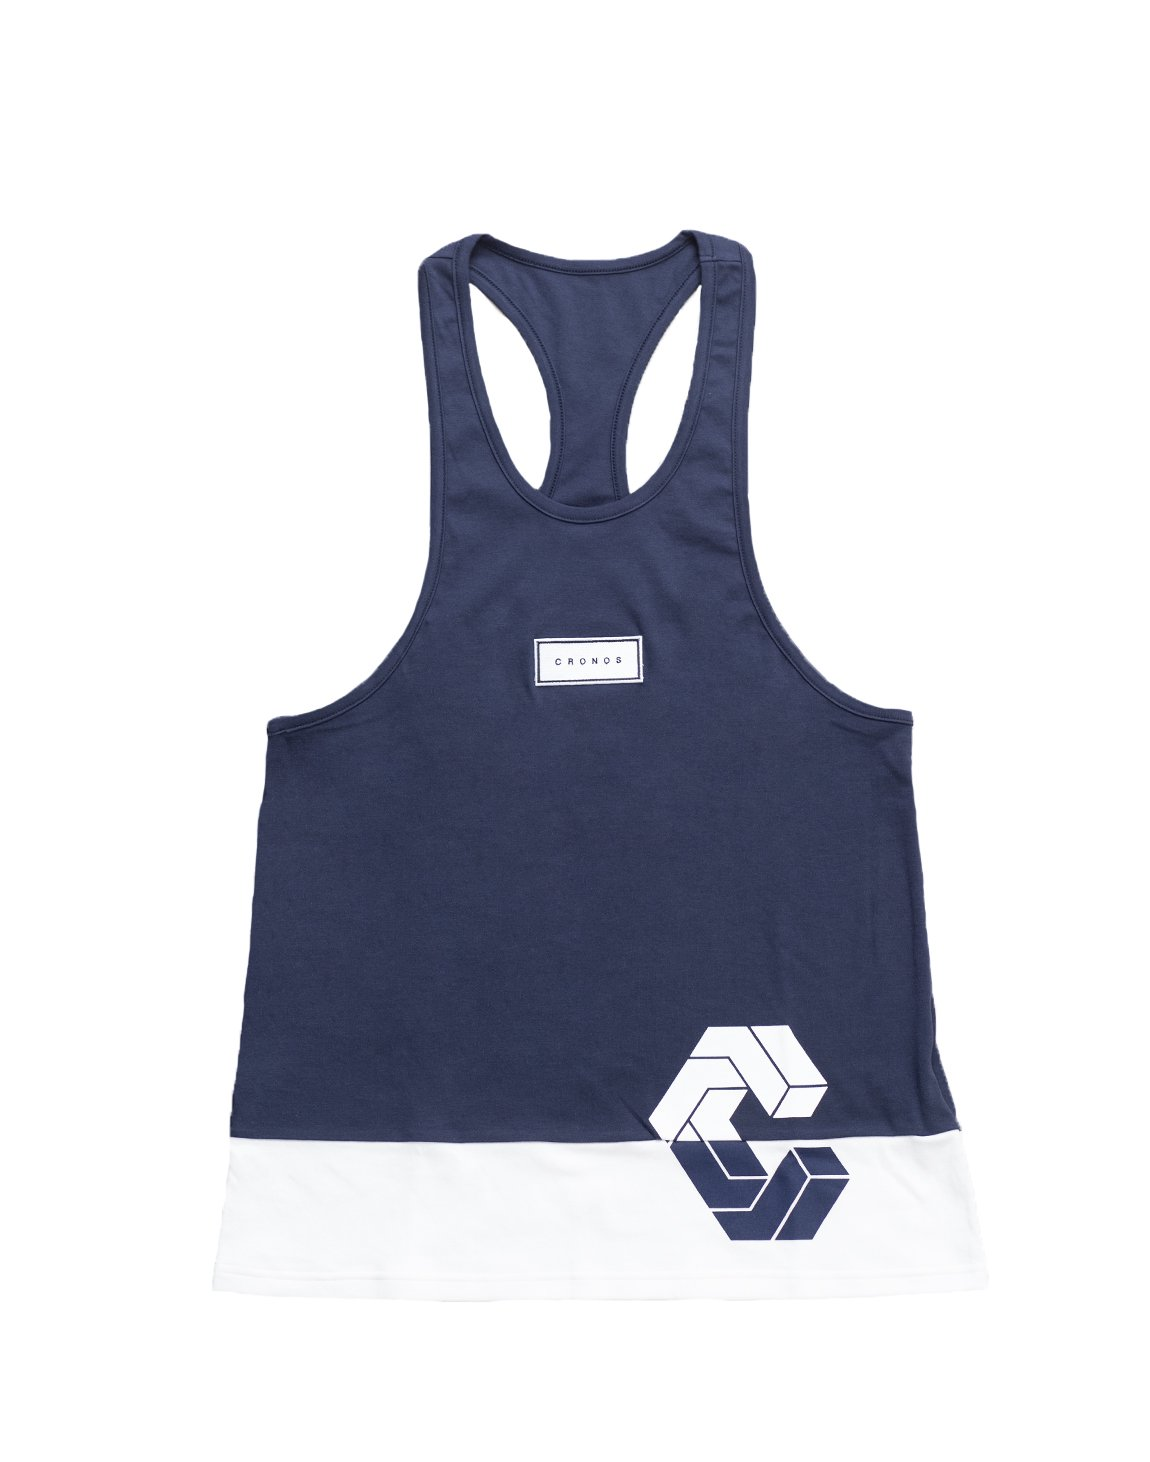 <img class='new_mark_img1' src='https://img.shop-pro.jp/img/new/icons1.gif' style='border:none;display:inline;margin:0px;padding:0px;width:auto;' />CRONOS BOX MODE SIDE LOGO TANK TOP【NAVY×WHITE】